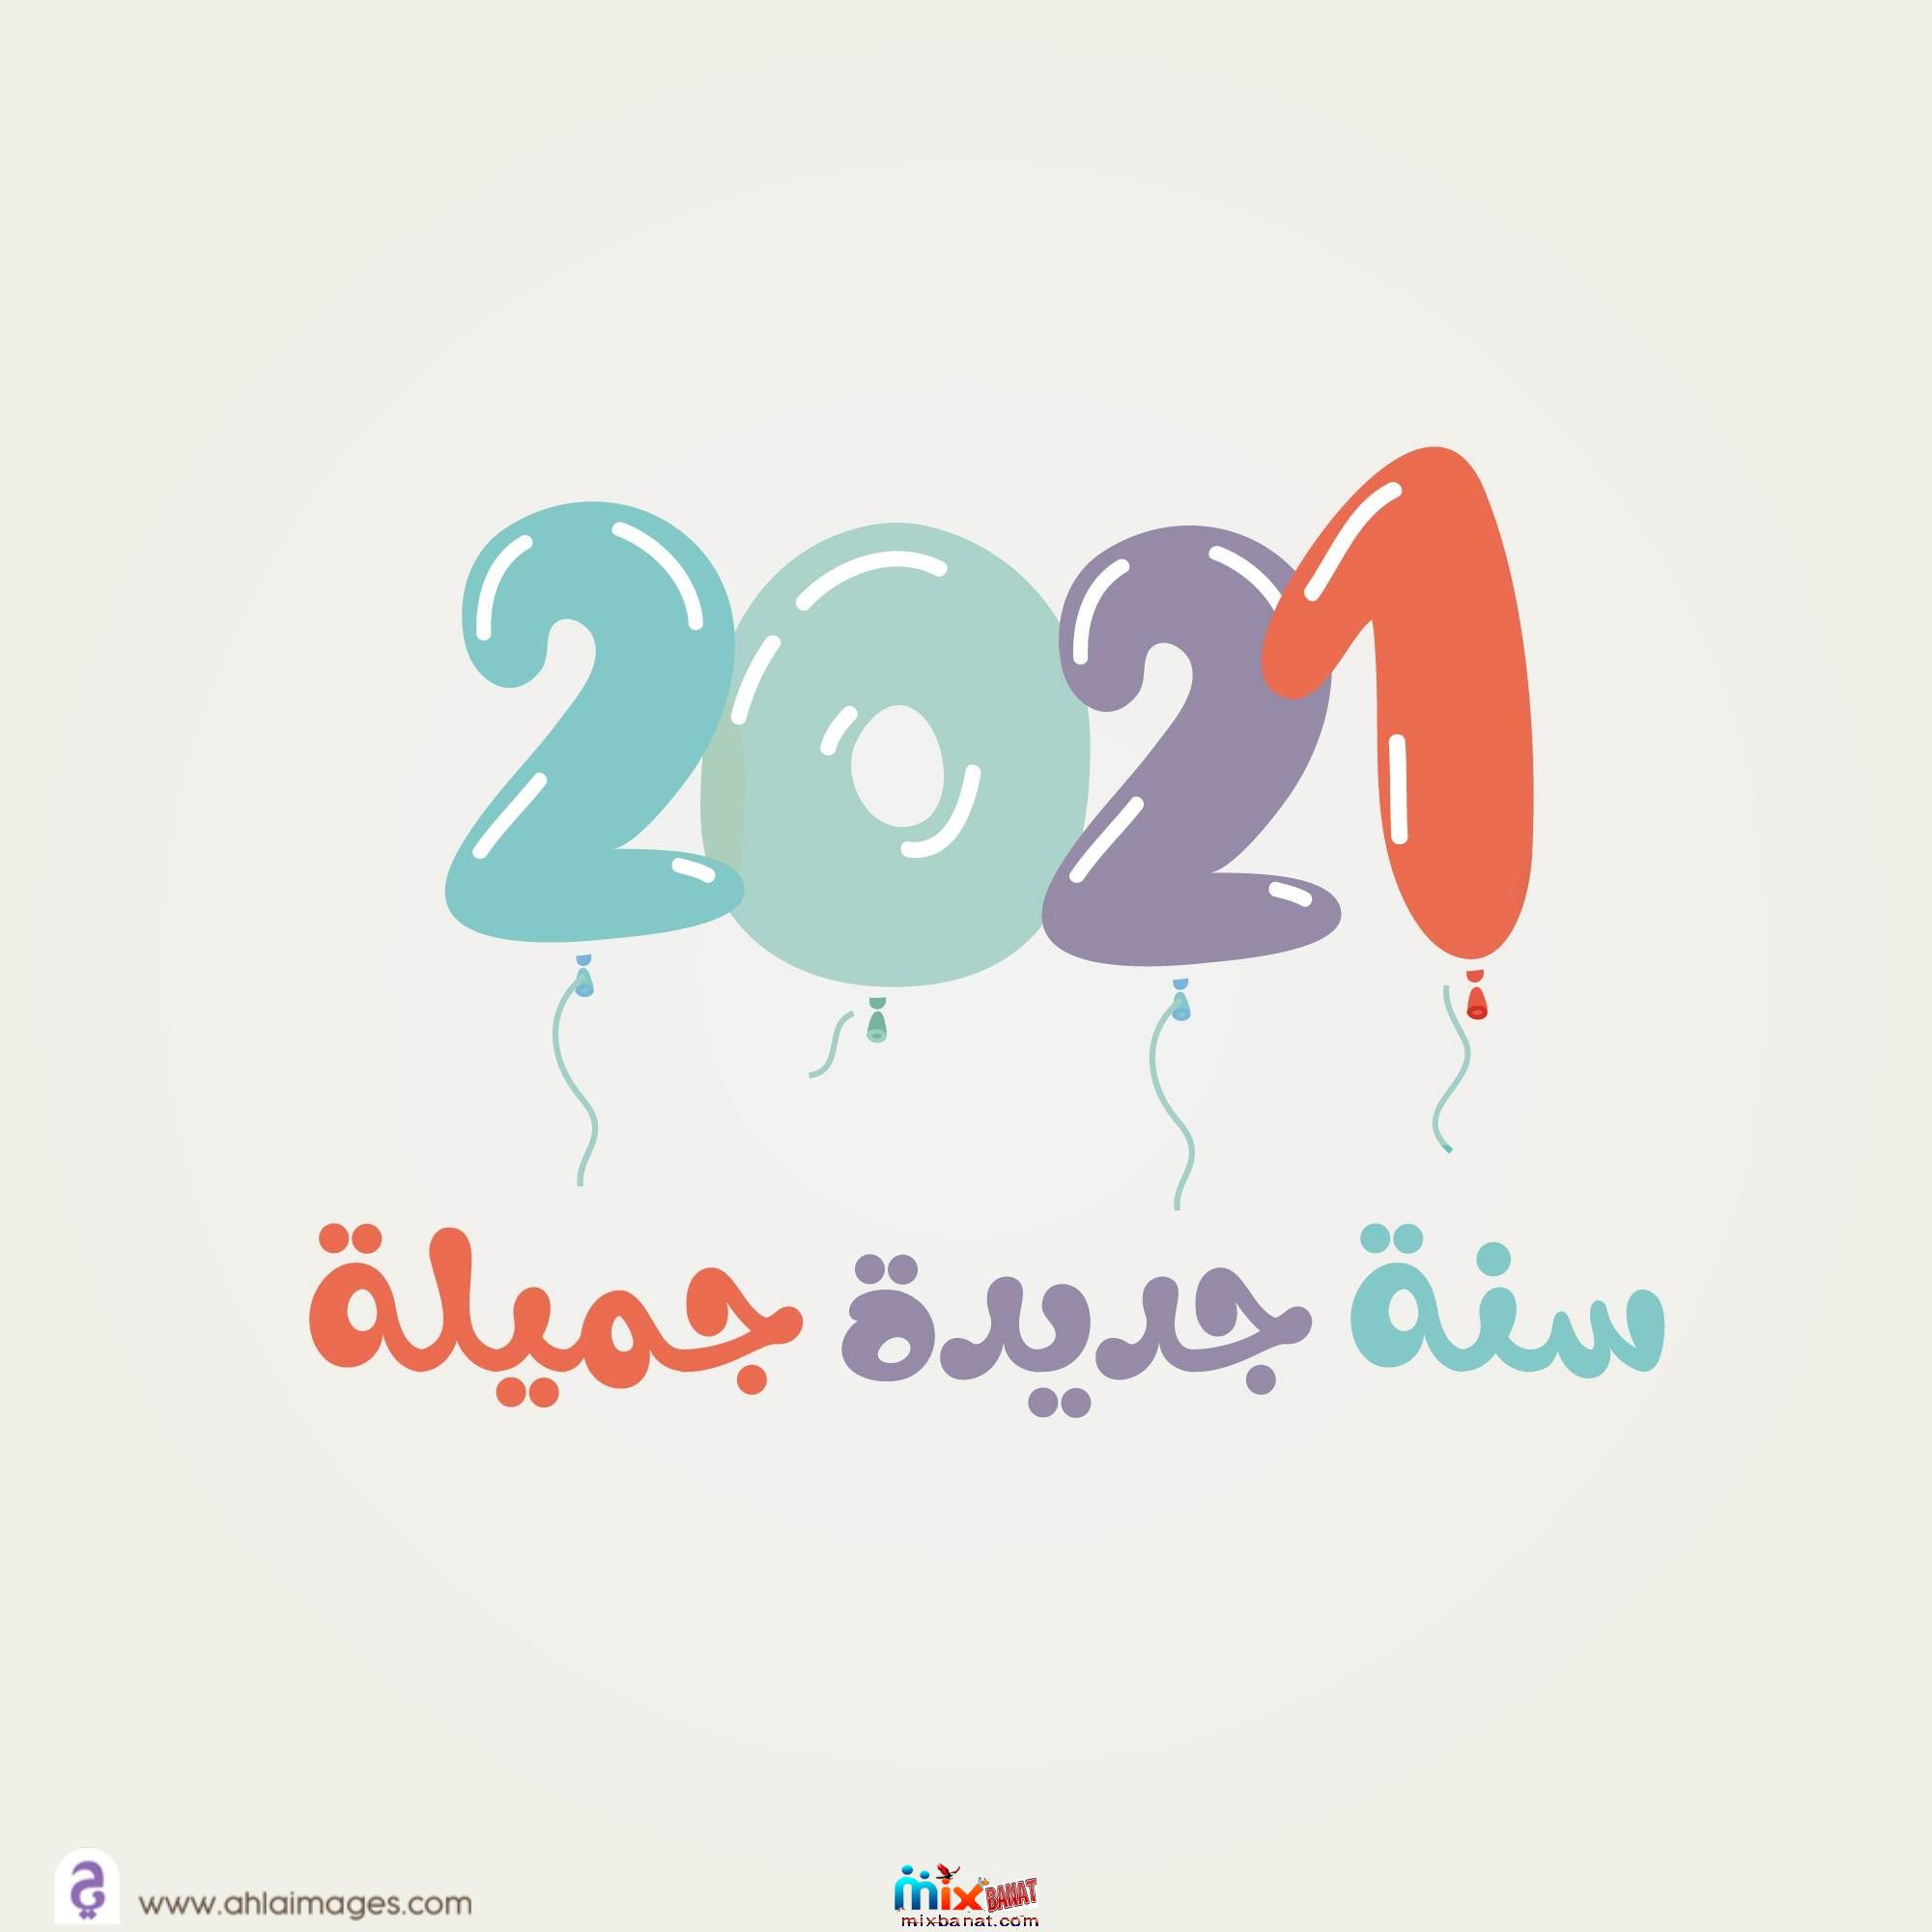 3 - Pictures for 2021 The most beautiful pictures written on it in 2021